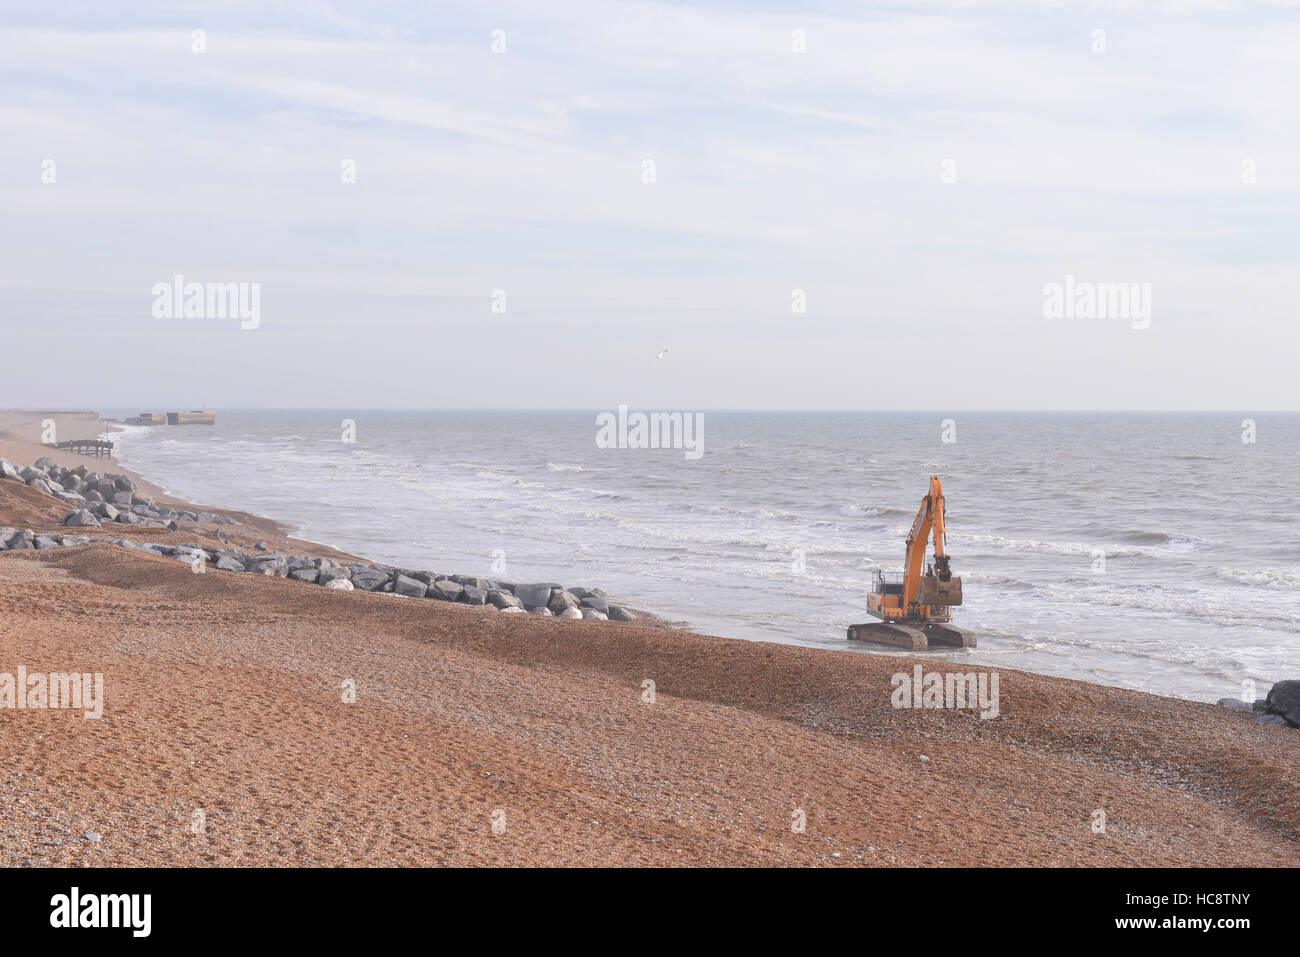 Large digger shoring up sea front by Hastings pier, Hastings UK - Stock Image